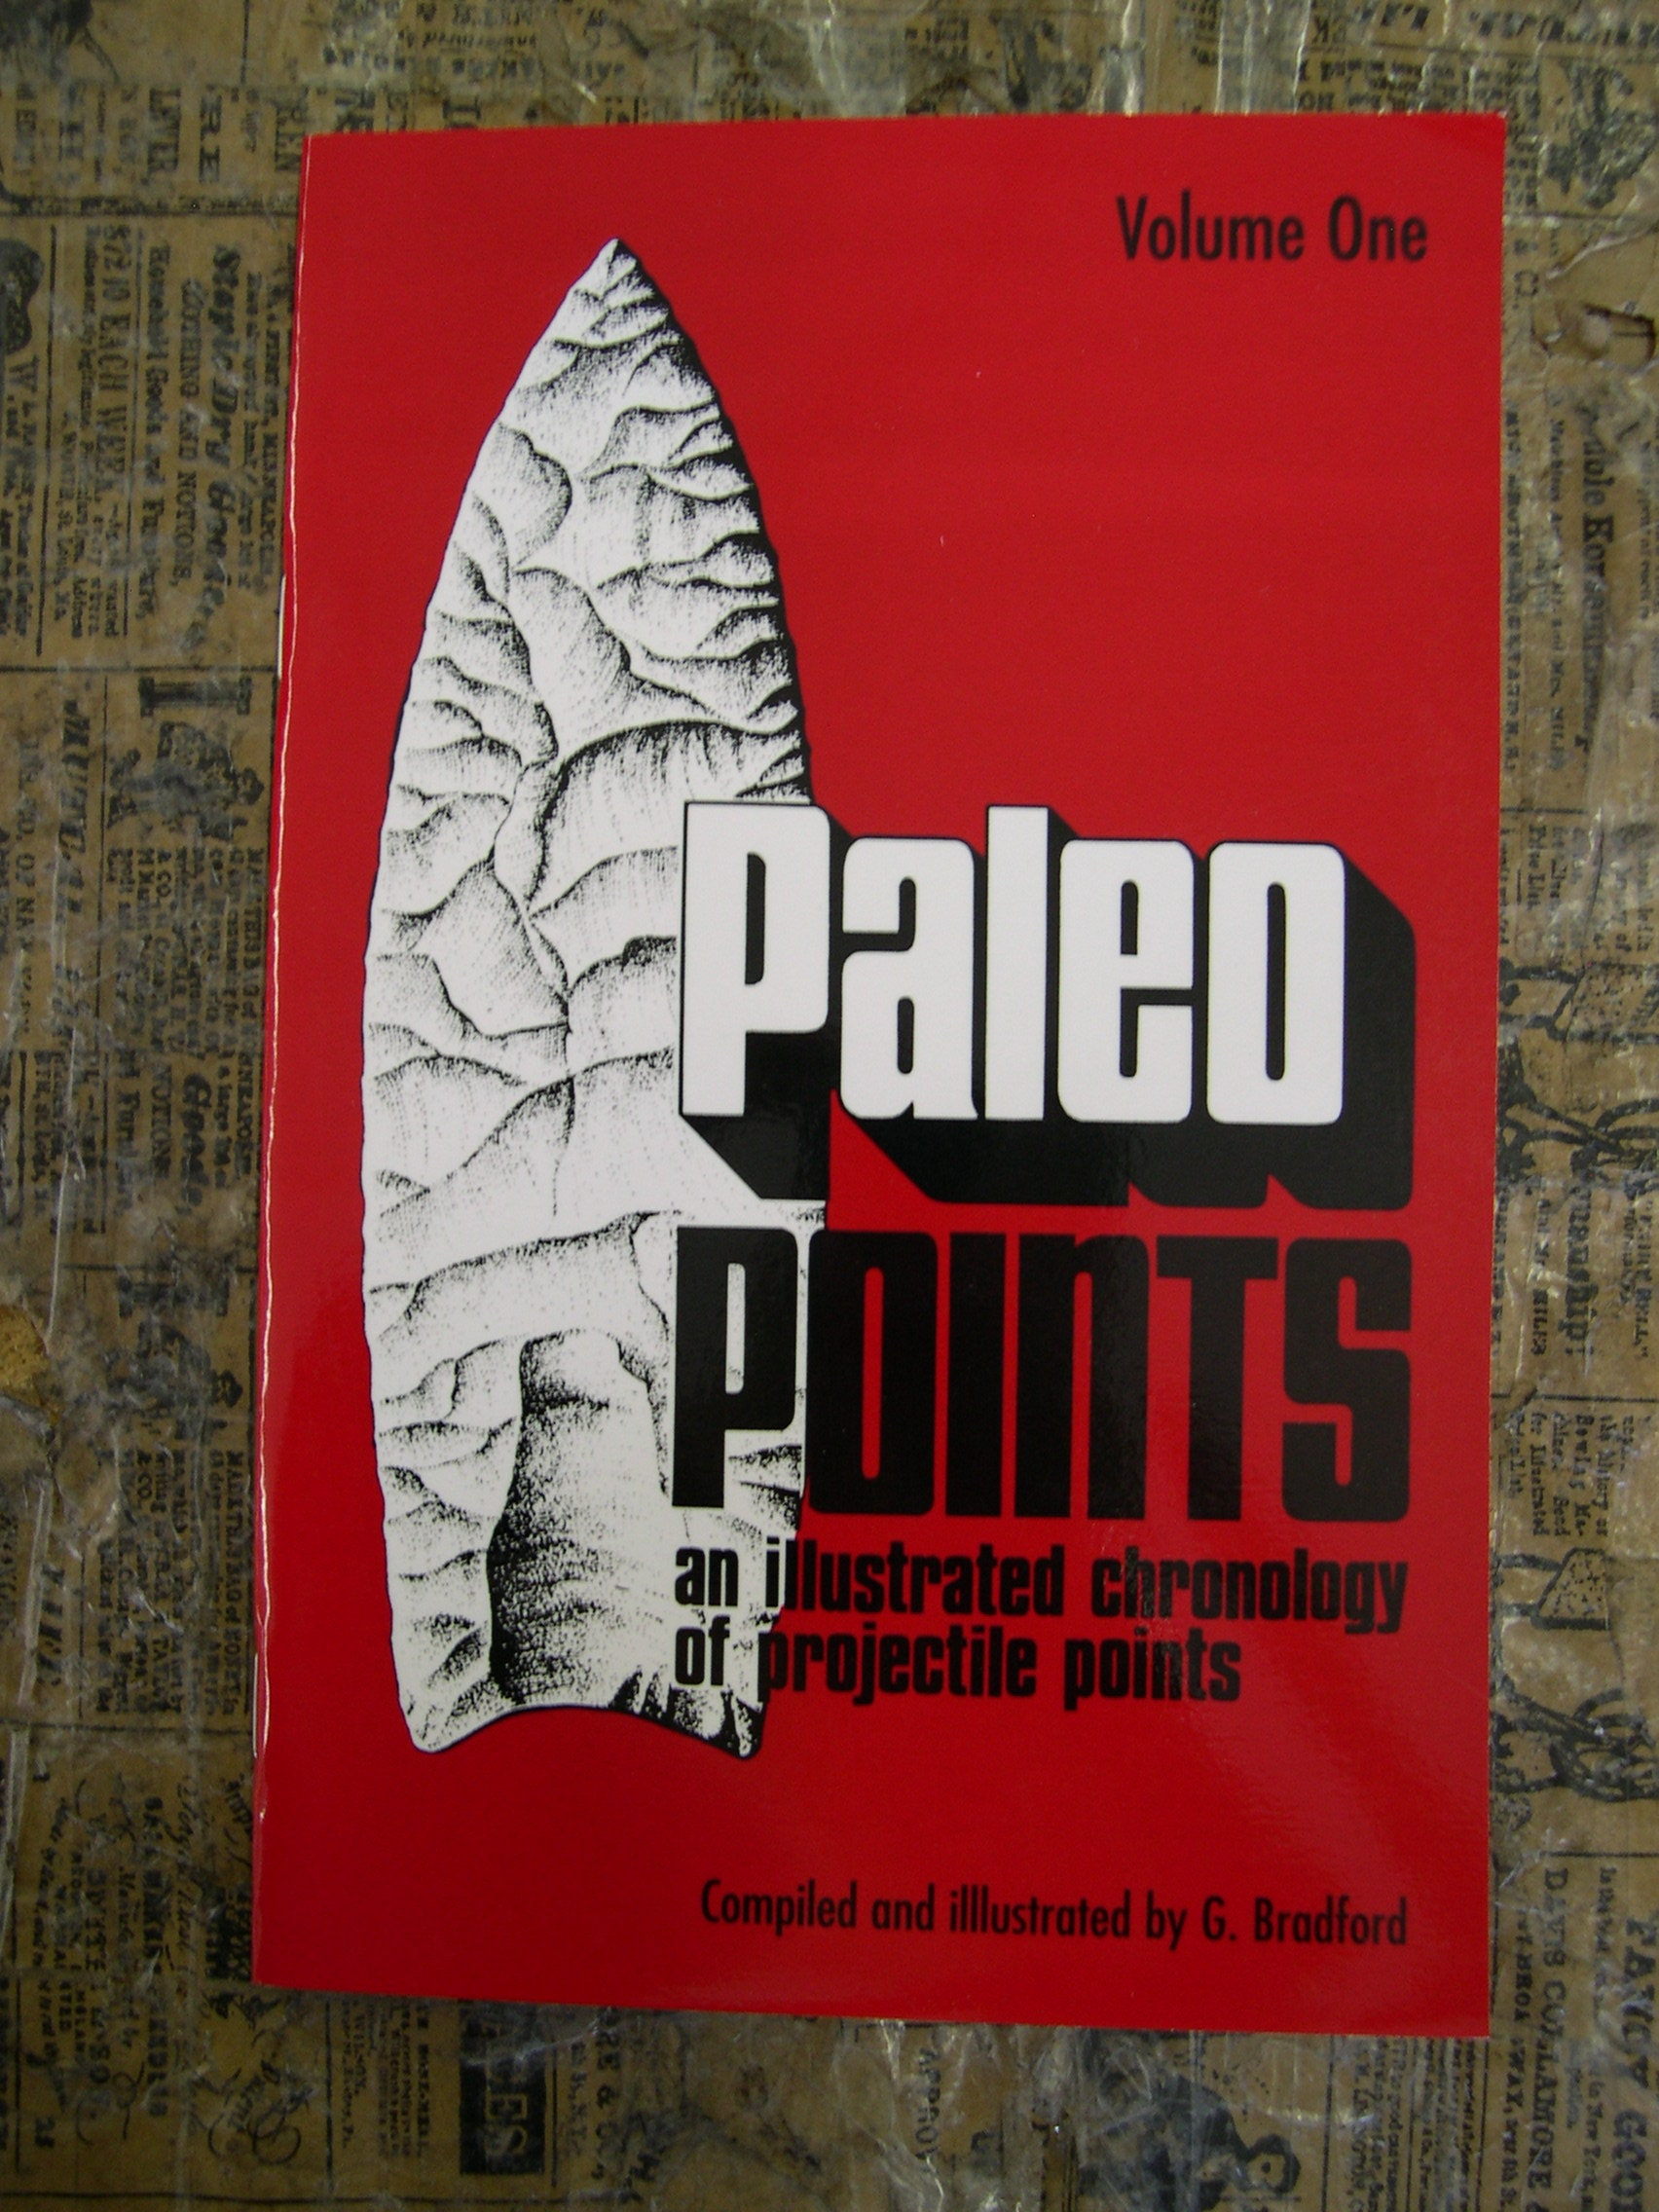 69054c335e0d0 Book Paleo Points Indian Arrowhead Native American Artifact Relic Clovis  Project New FREE SHIPPING